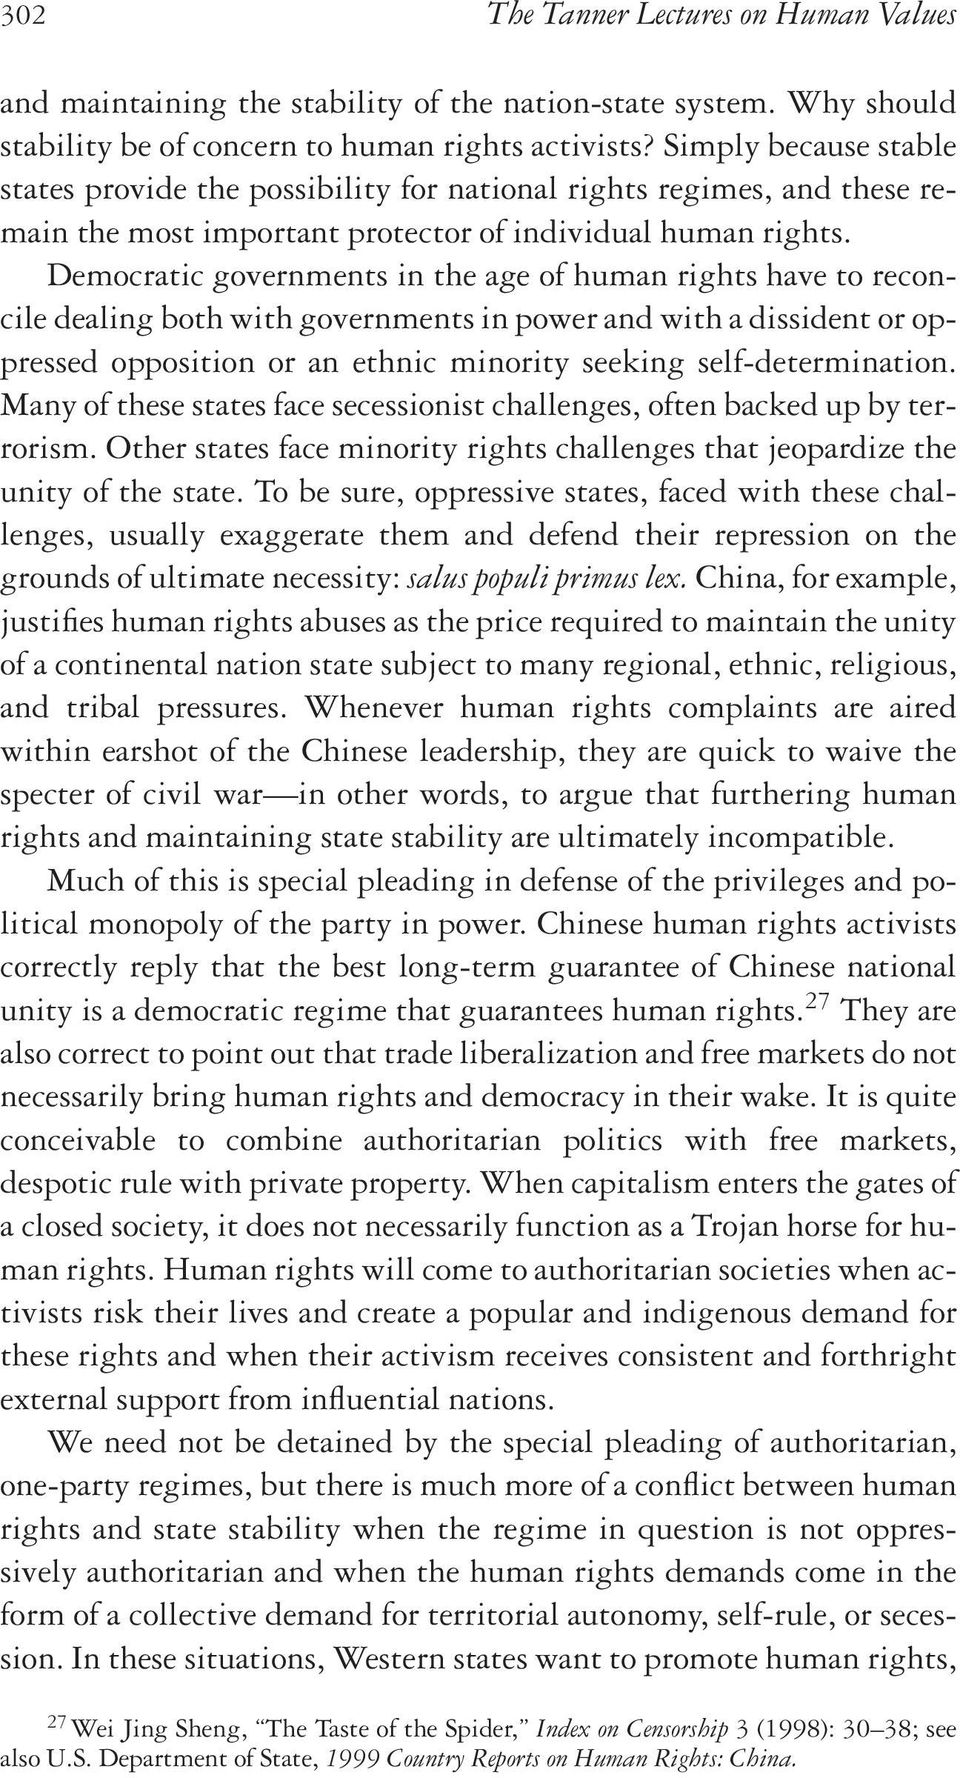 Democratic governments in the age of human rights have to reconcile dealing both with governments in power and with a dissident or oppressed opposition or an ethnic minority seeking